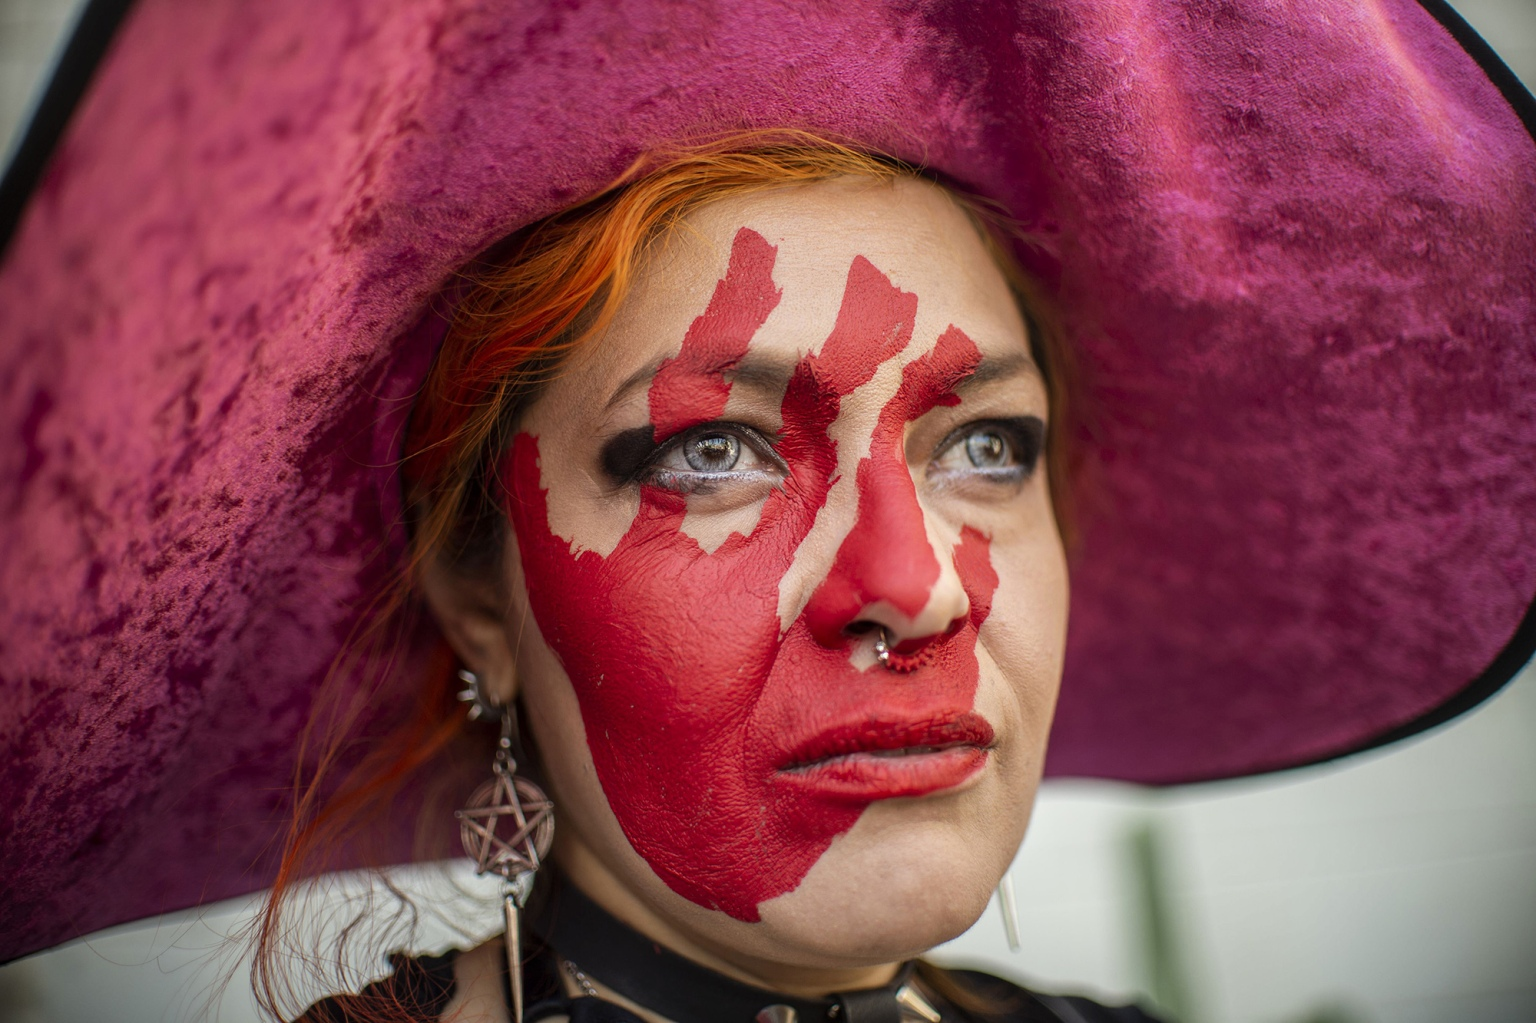 A woman takes part in a protest against gender violence and femicides in Mexico City on Feb. 2. (Pedro Pardo/AFP/Getty Images)